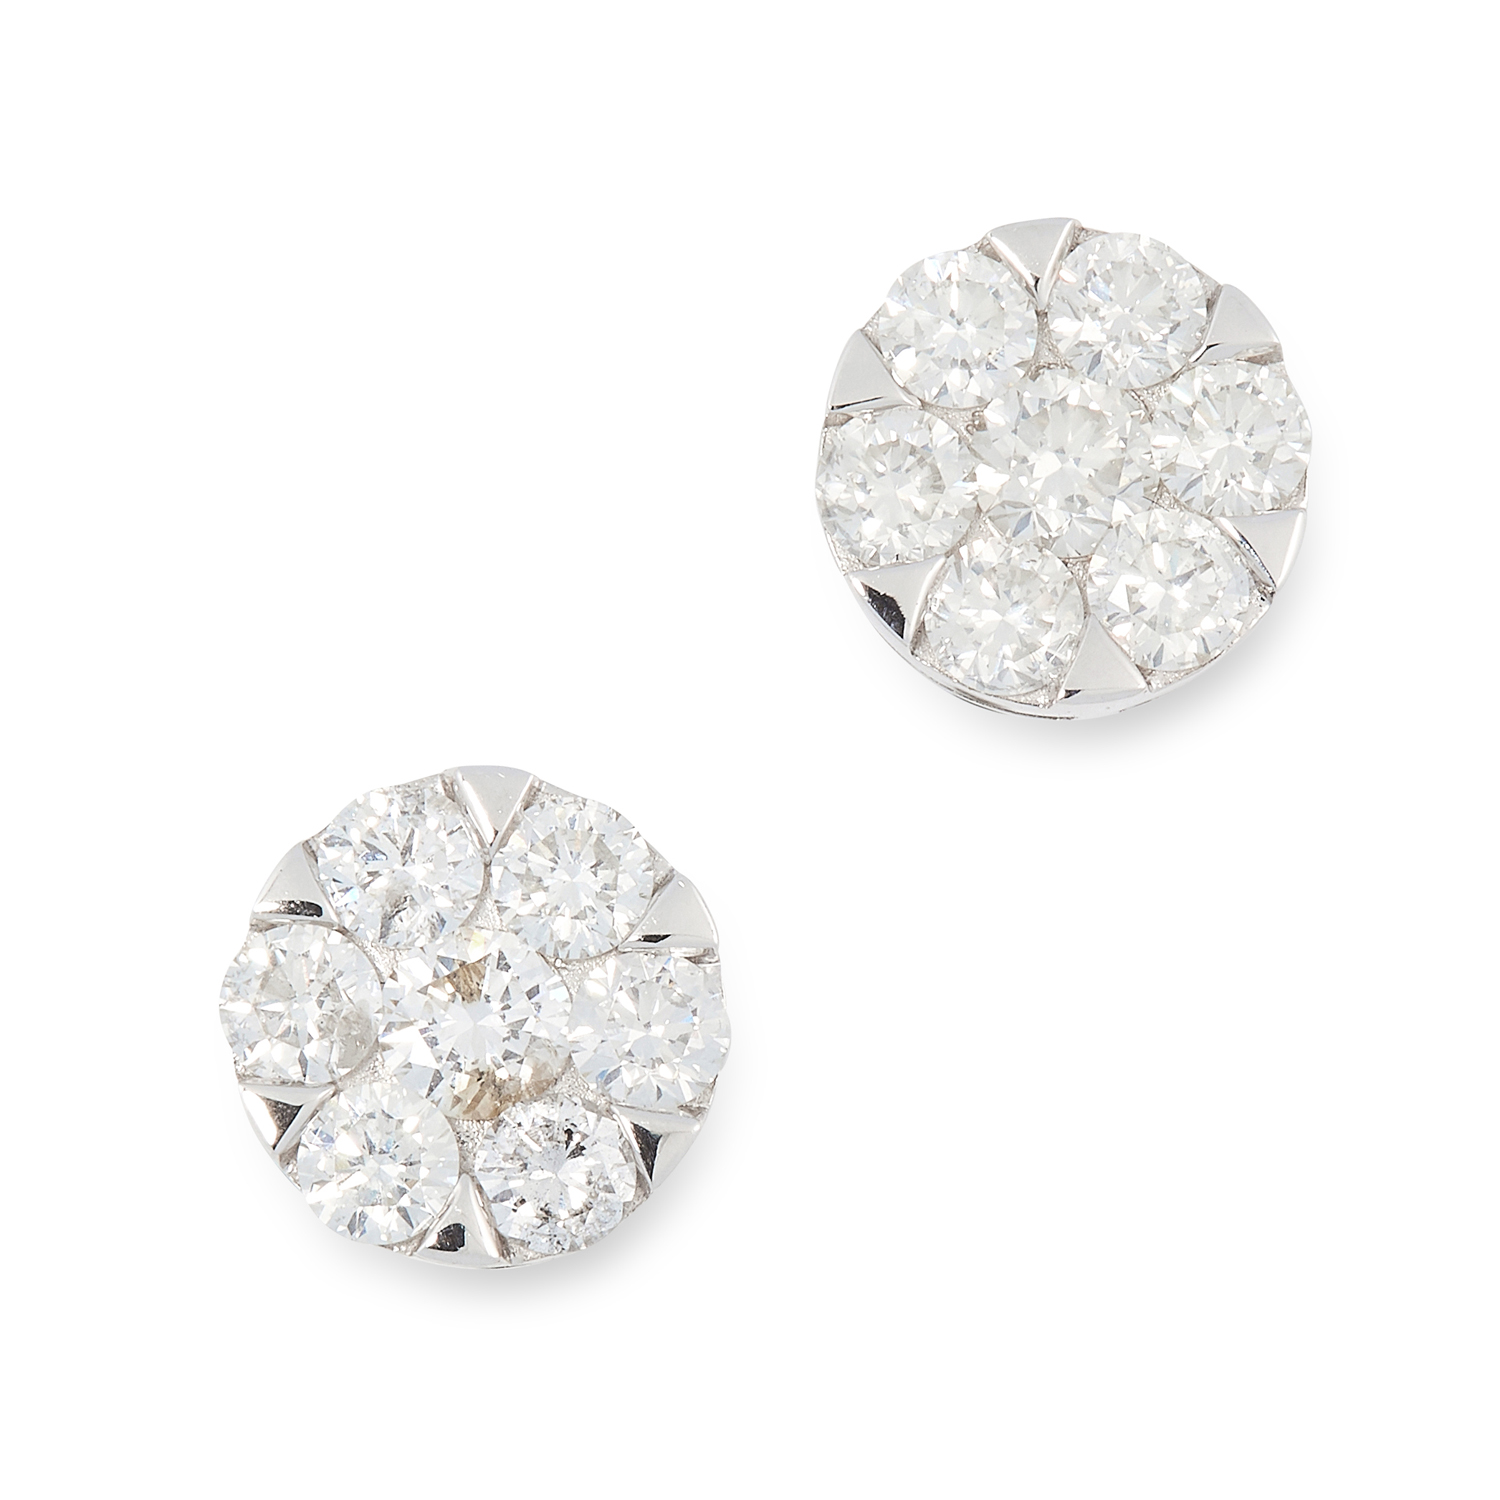 A PAIR OF DIAMOND CLUSTER STUD EARRINGS each of circular design, set with a cluster of round cut